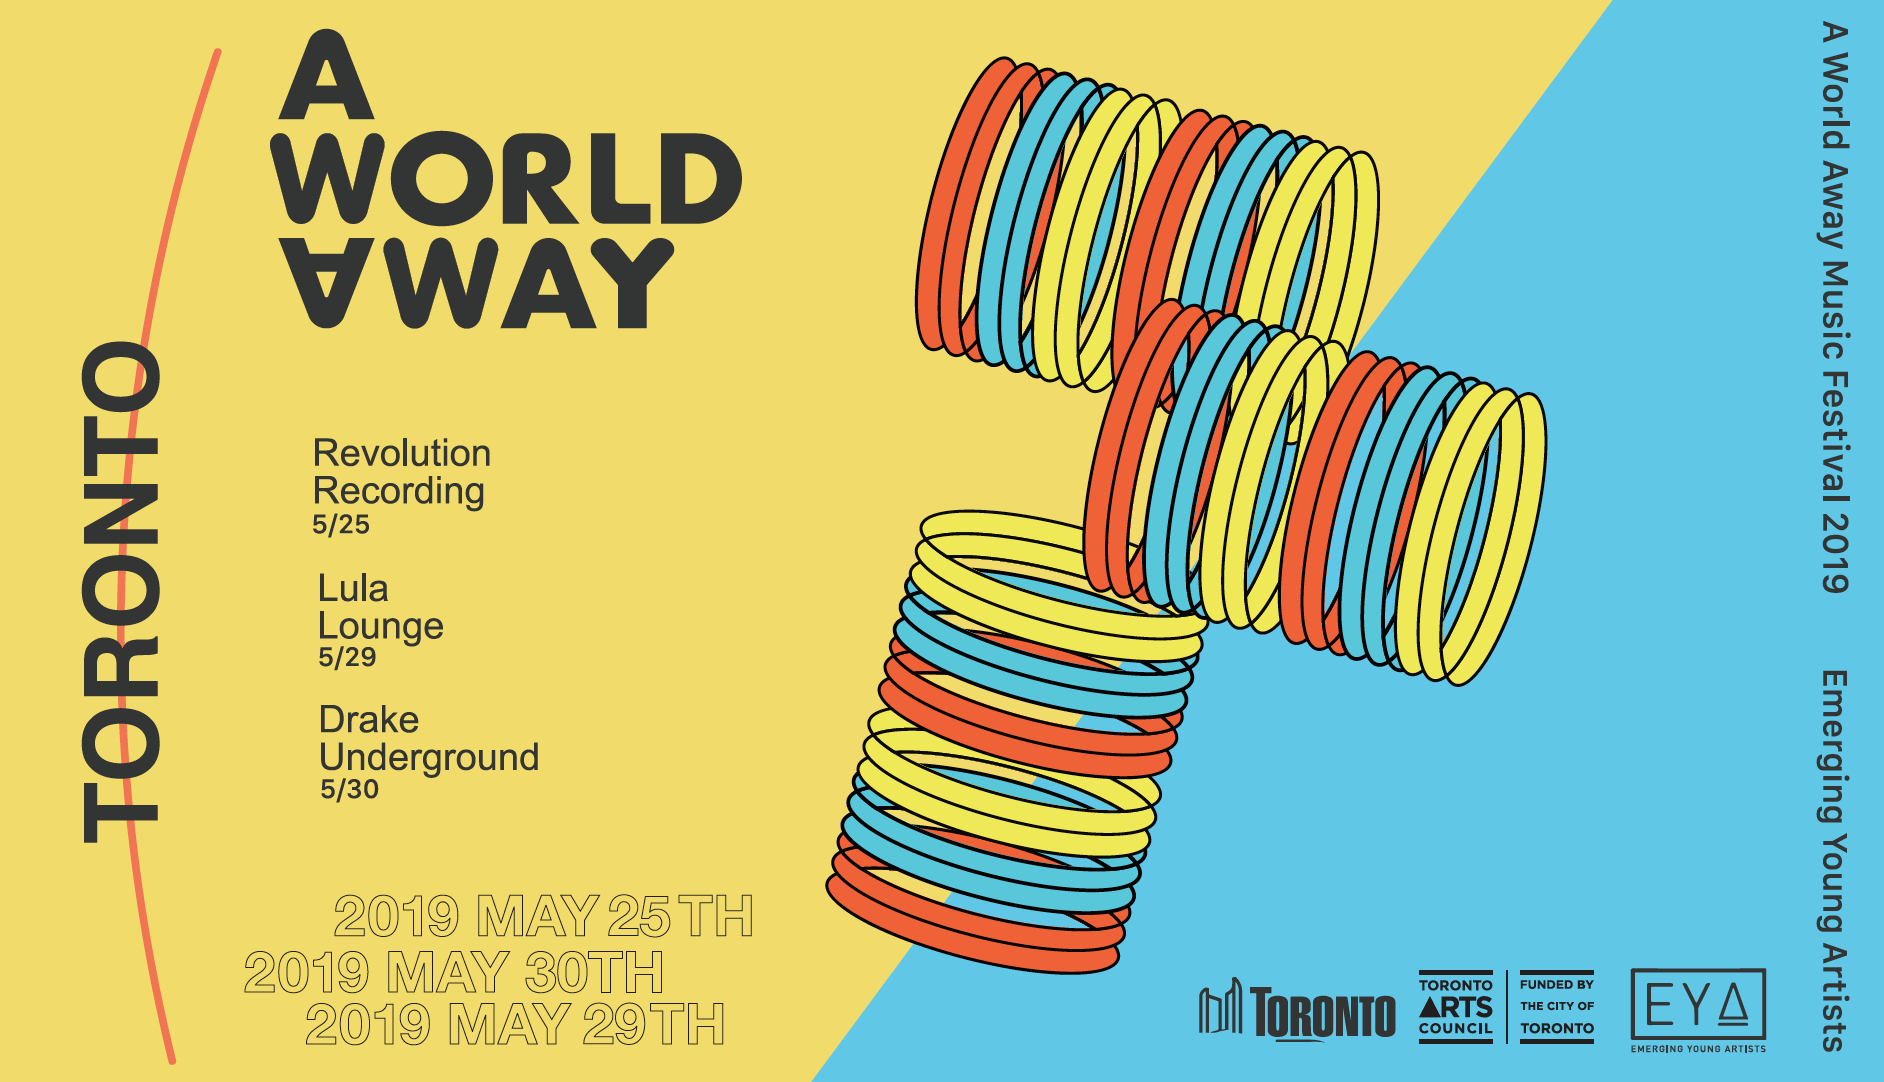 A WORLD AWAY INDIE MUSIC FESTIVAL 2019